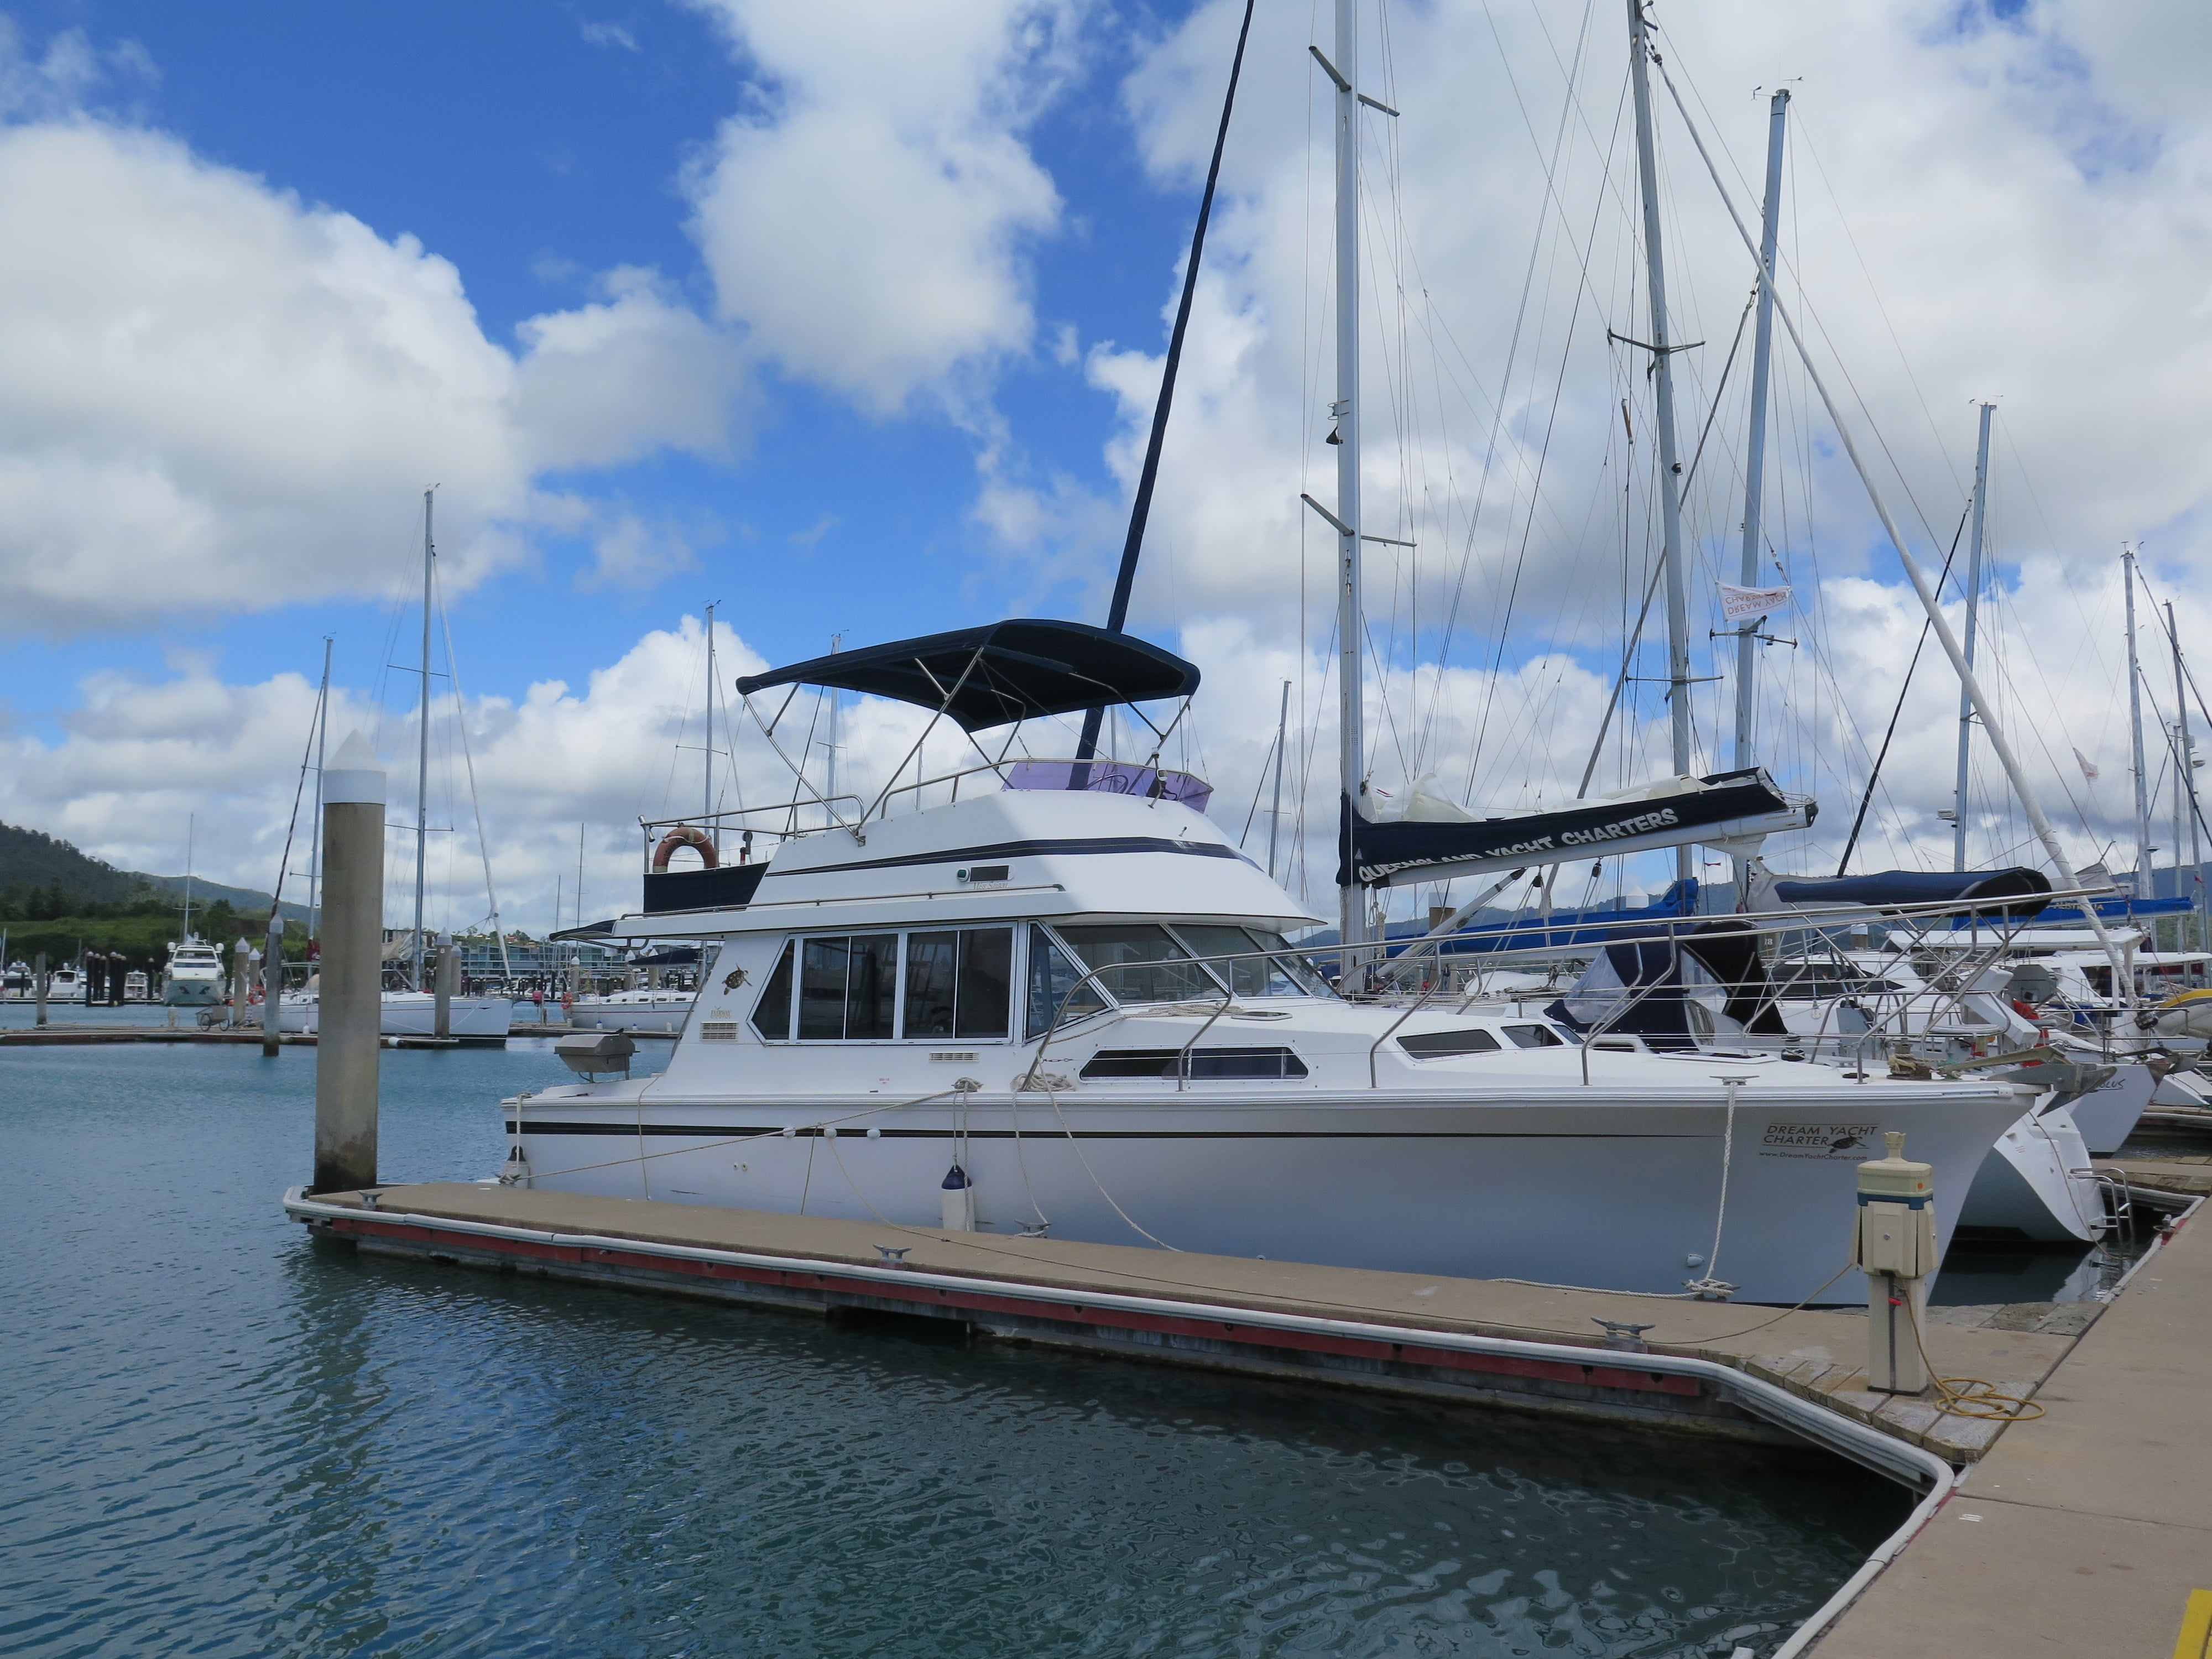 Yacht Charters: Explore the Whitsundays with a Powerboat